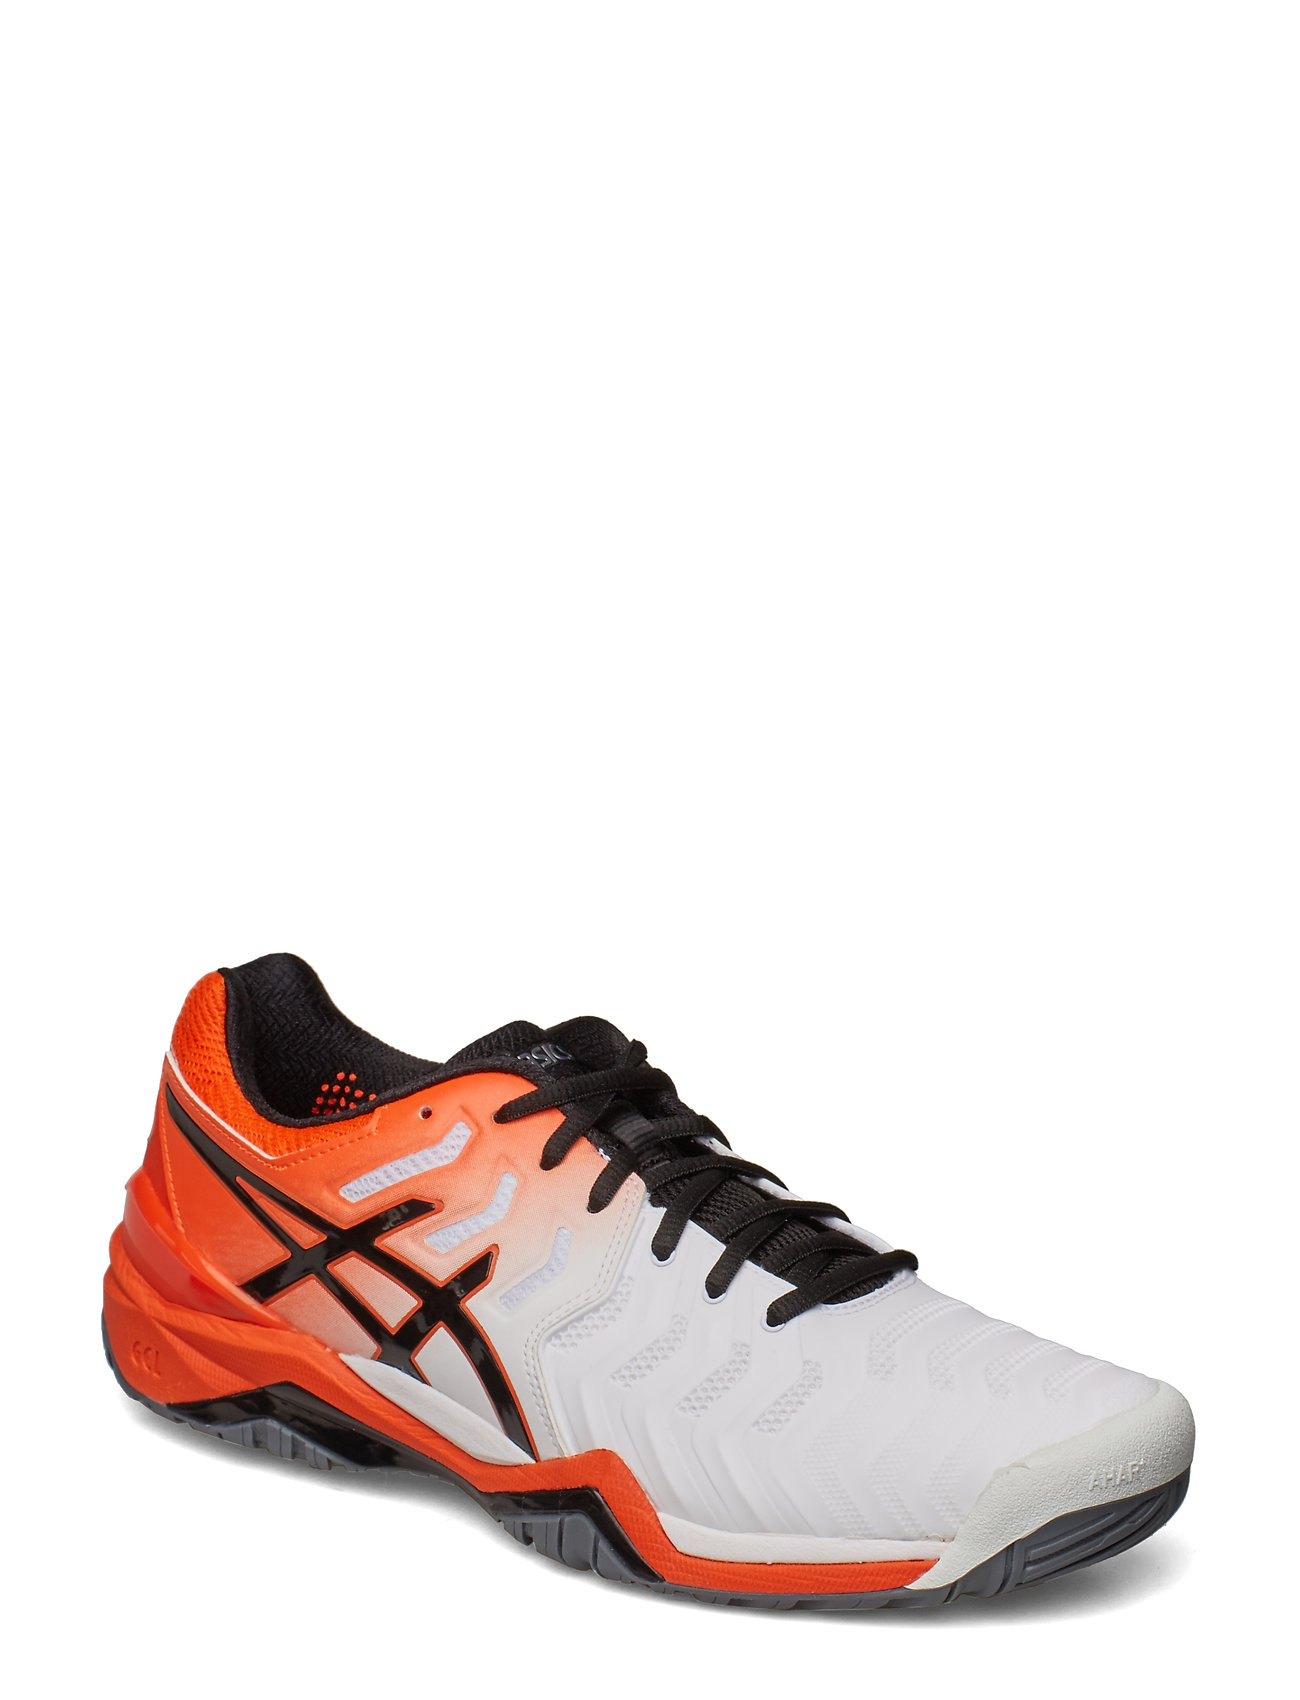 ASICS Gel-Resolution 7 Shoes Sport Shoes Training Shoes- Golf/tennis/fitness Orange ASICS